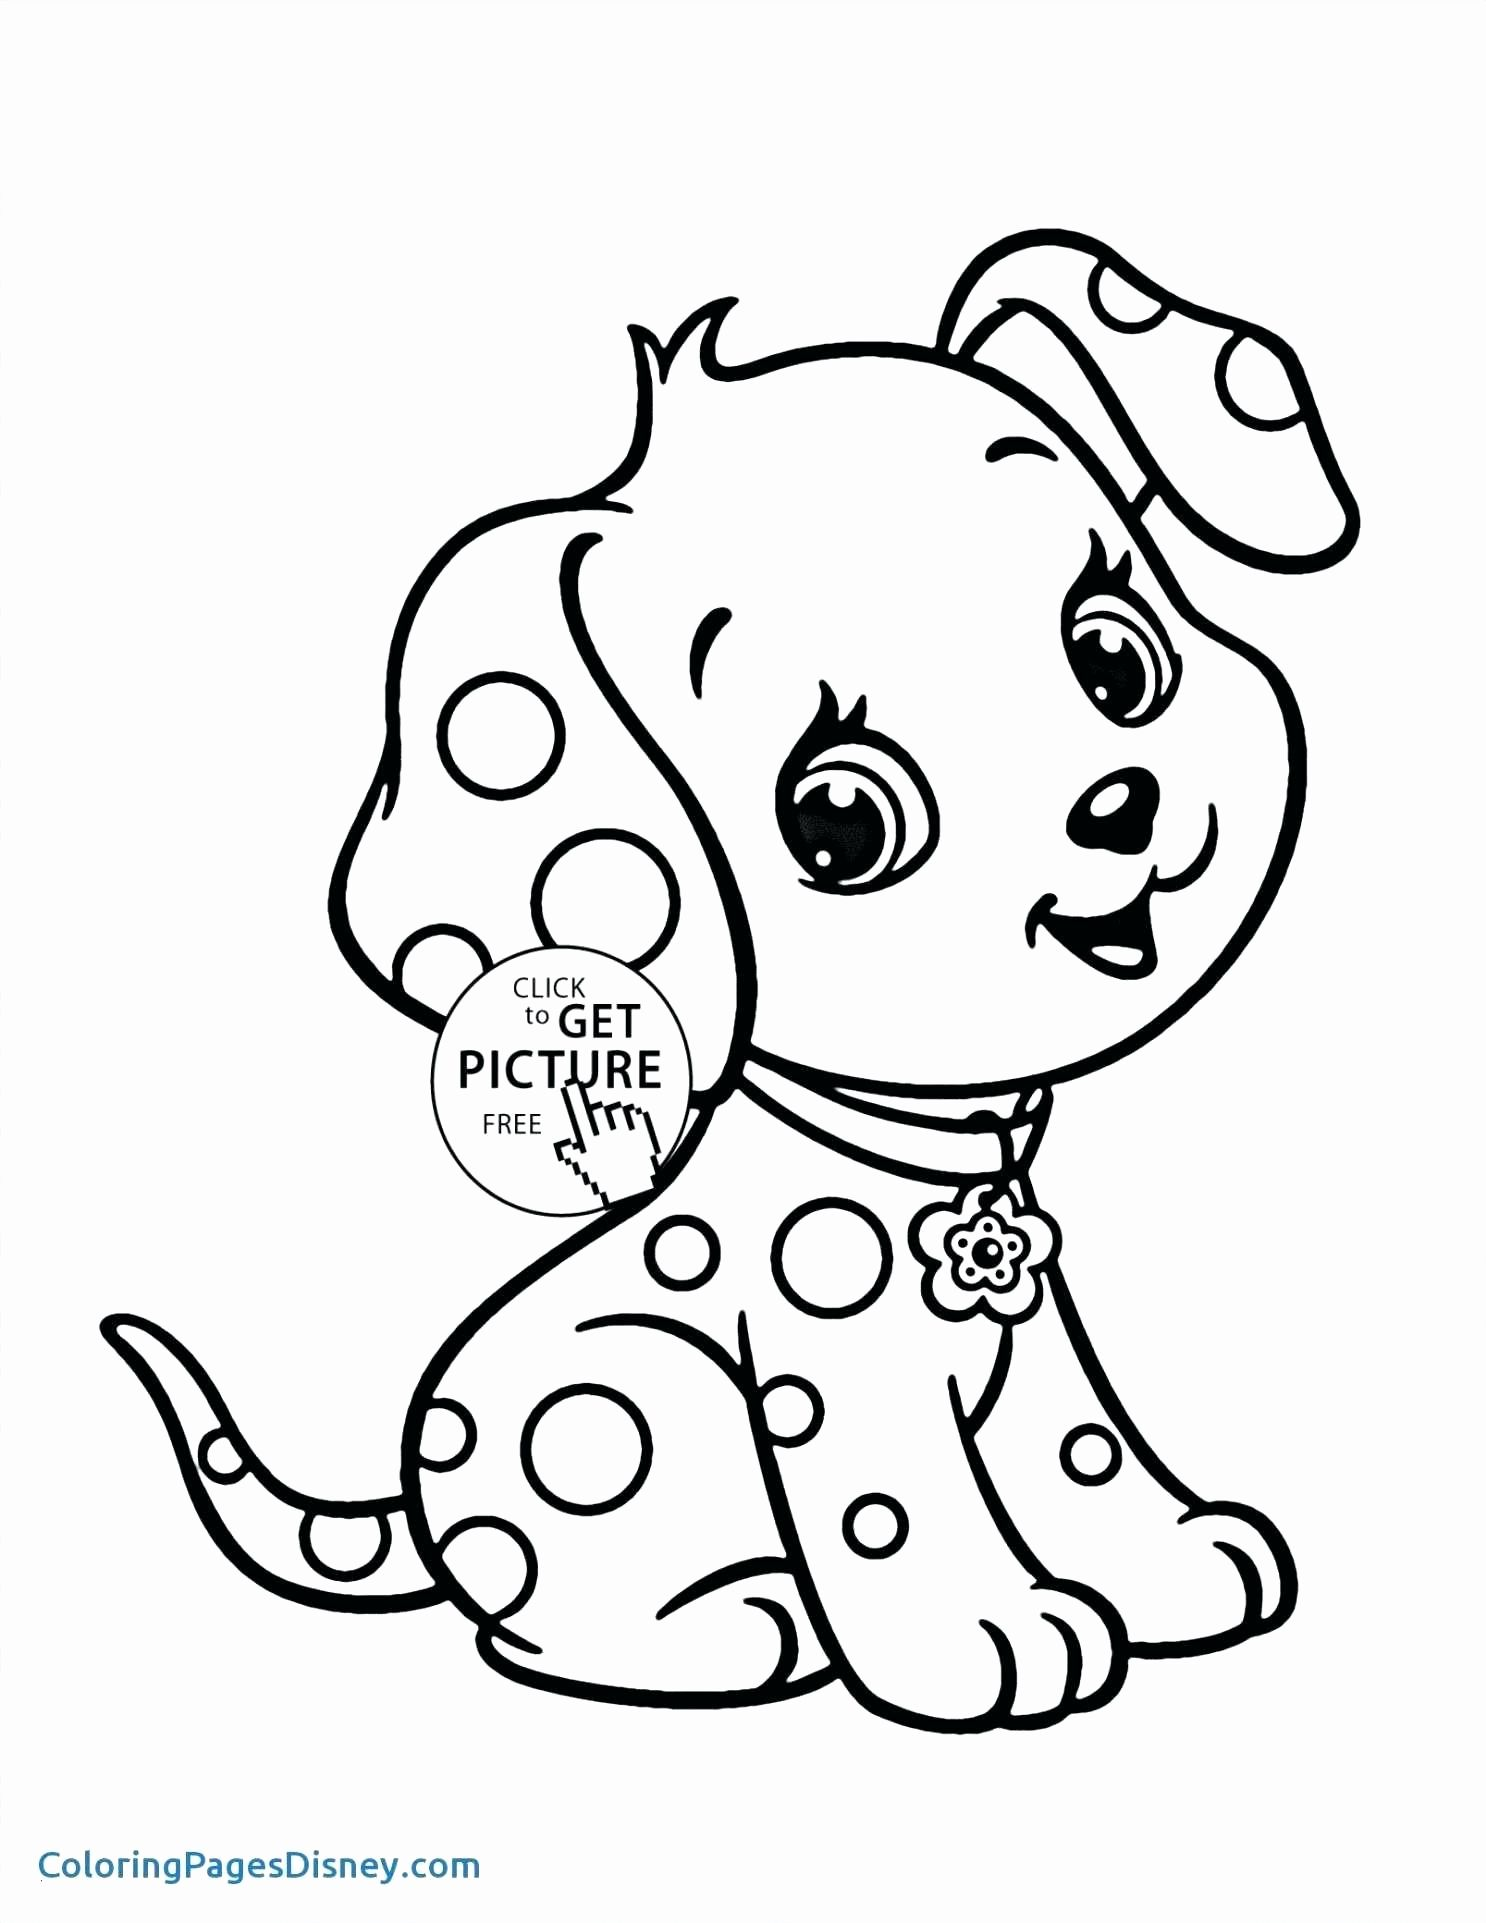 Disney Free Printable Coloring Pages For Kids Unicorn Coloring Pages Puppy Coloring Pages Cute Coloring Pages